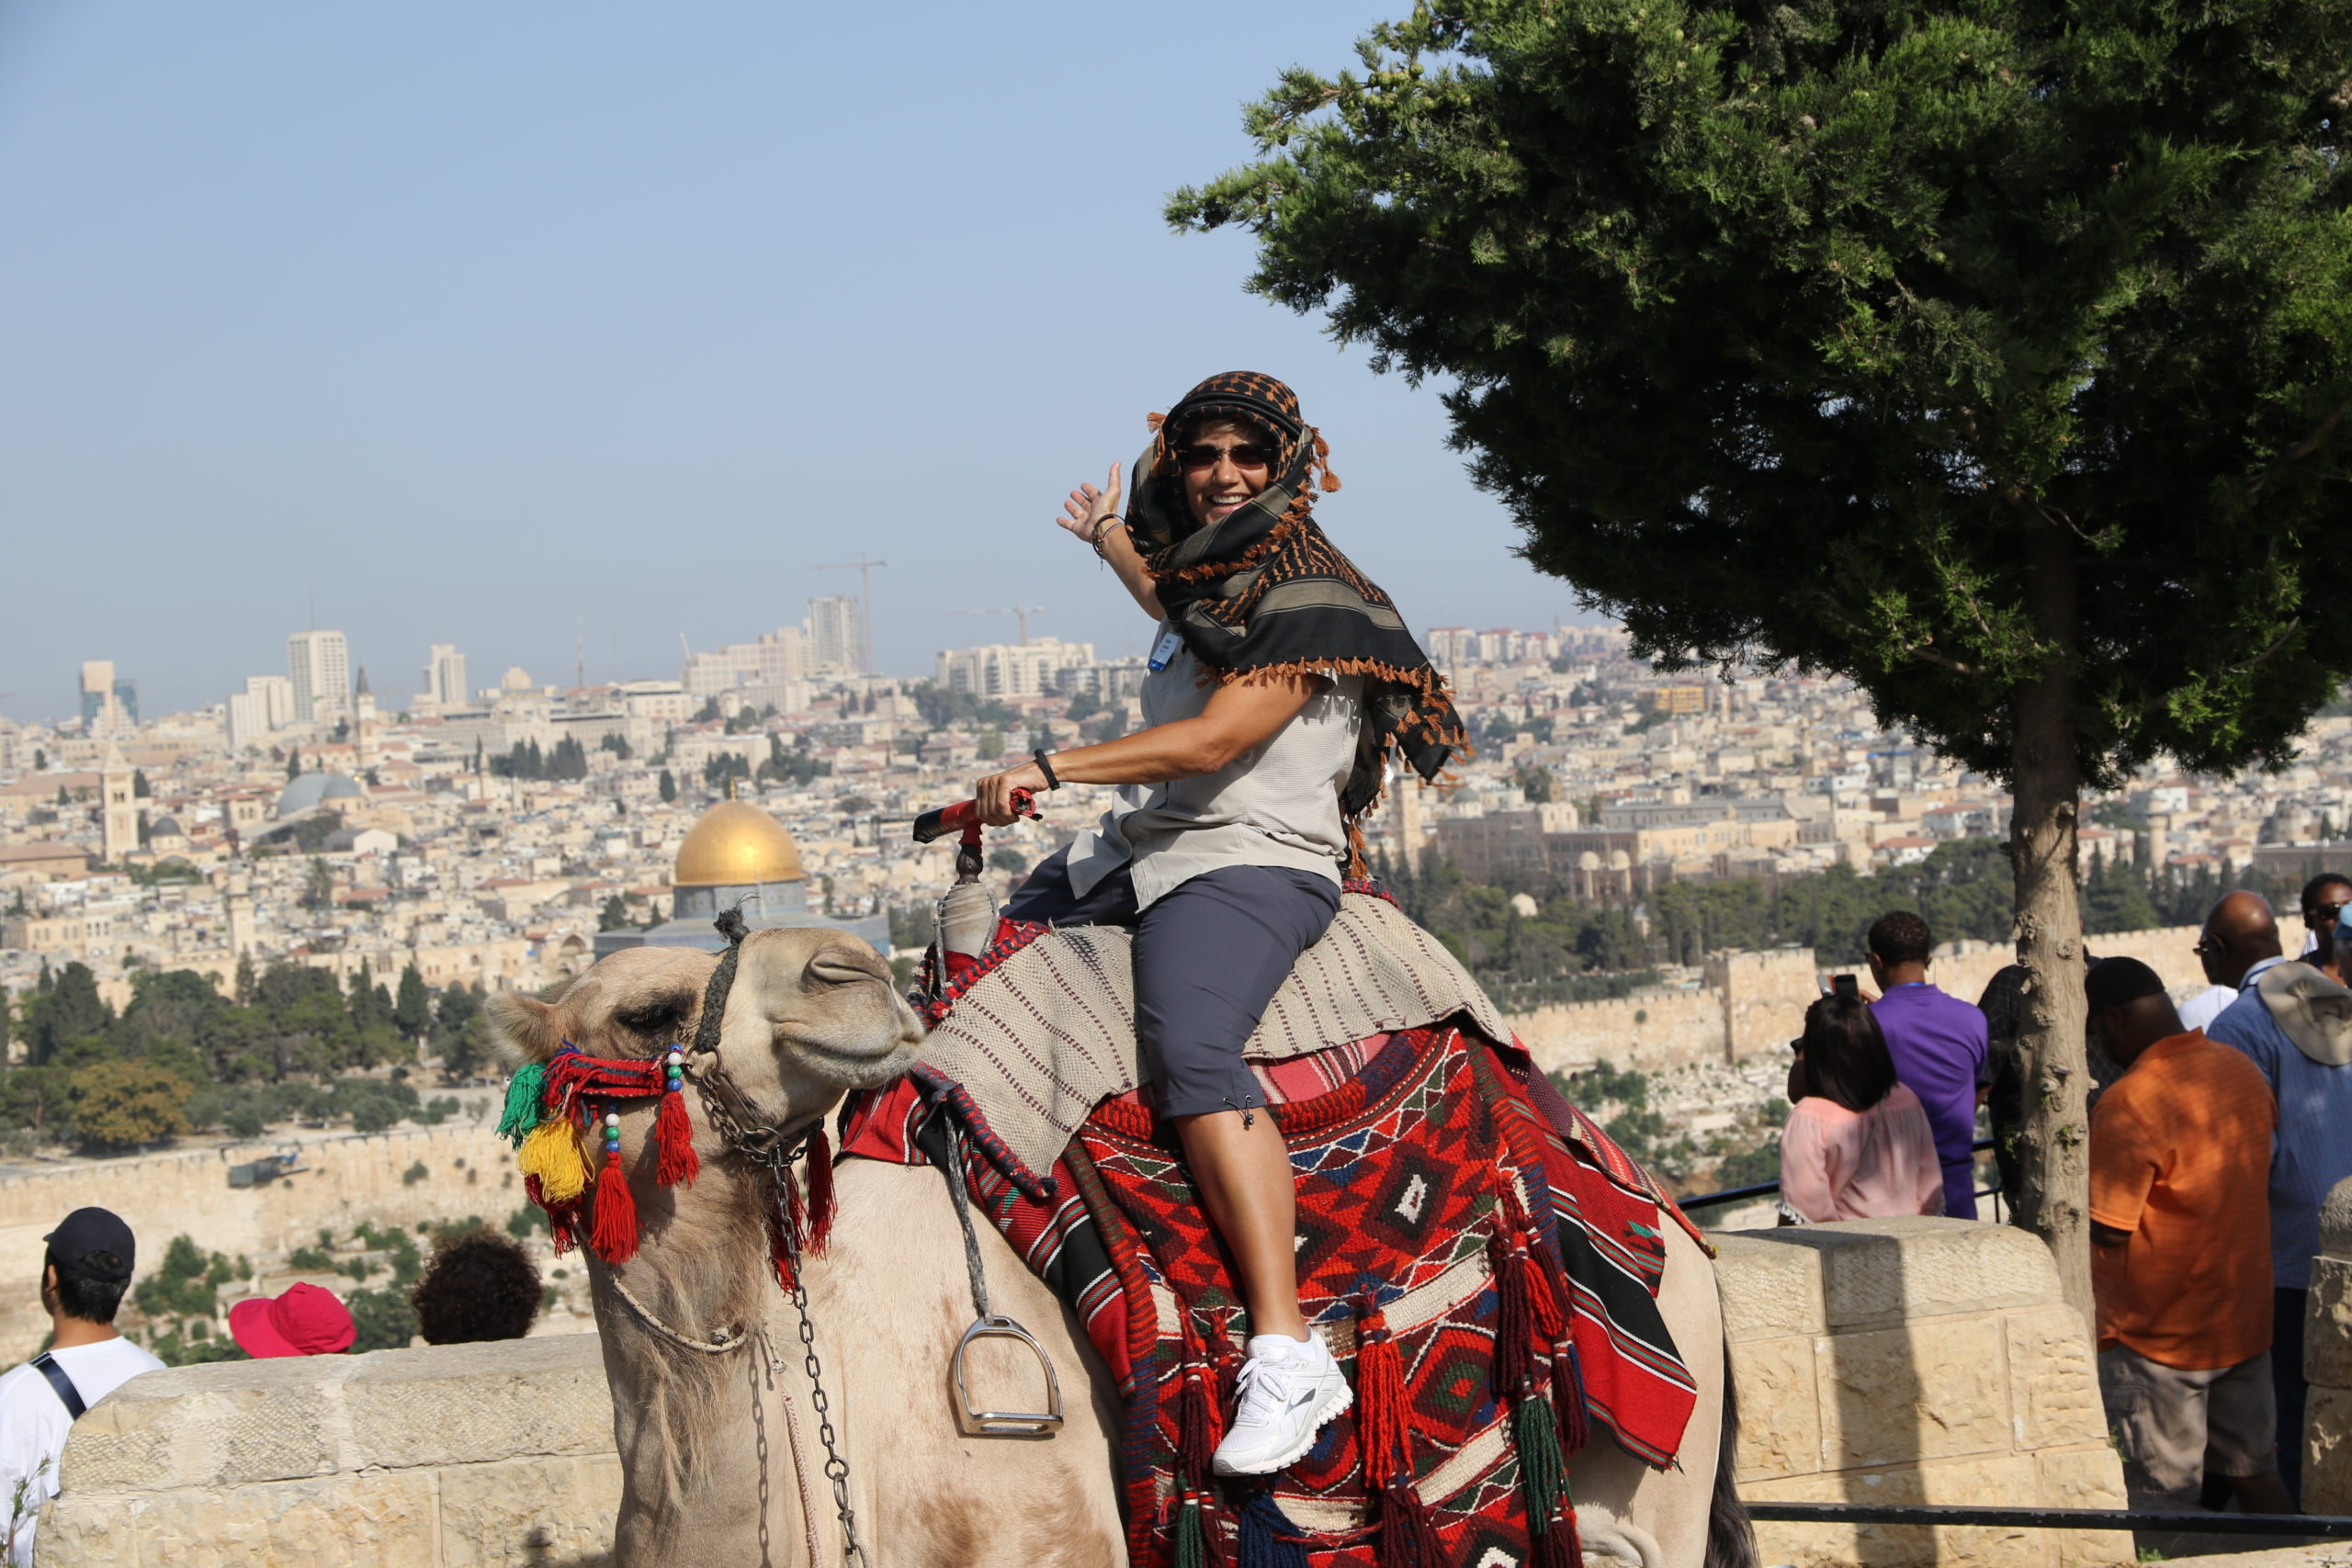 What a way to tour Jerusalem